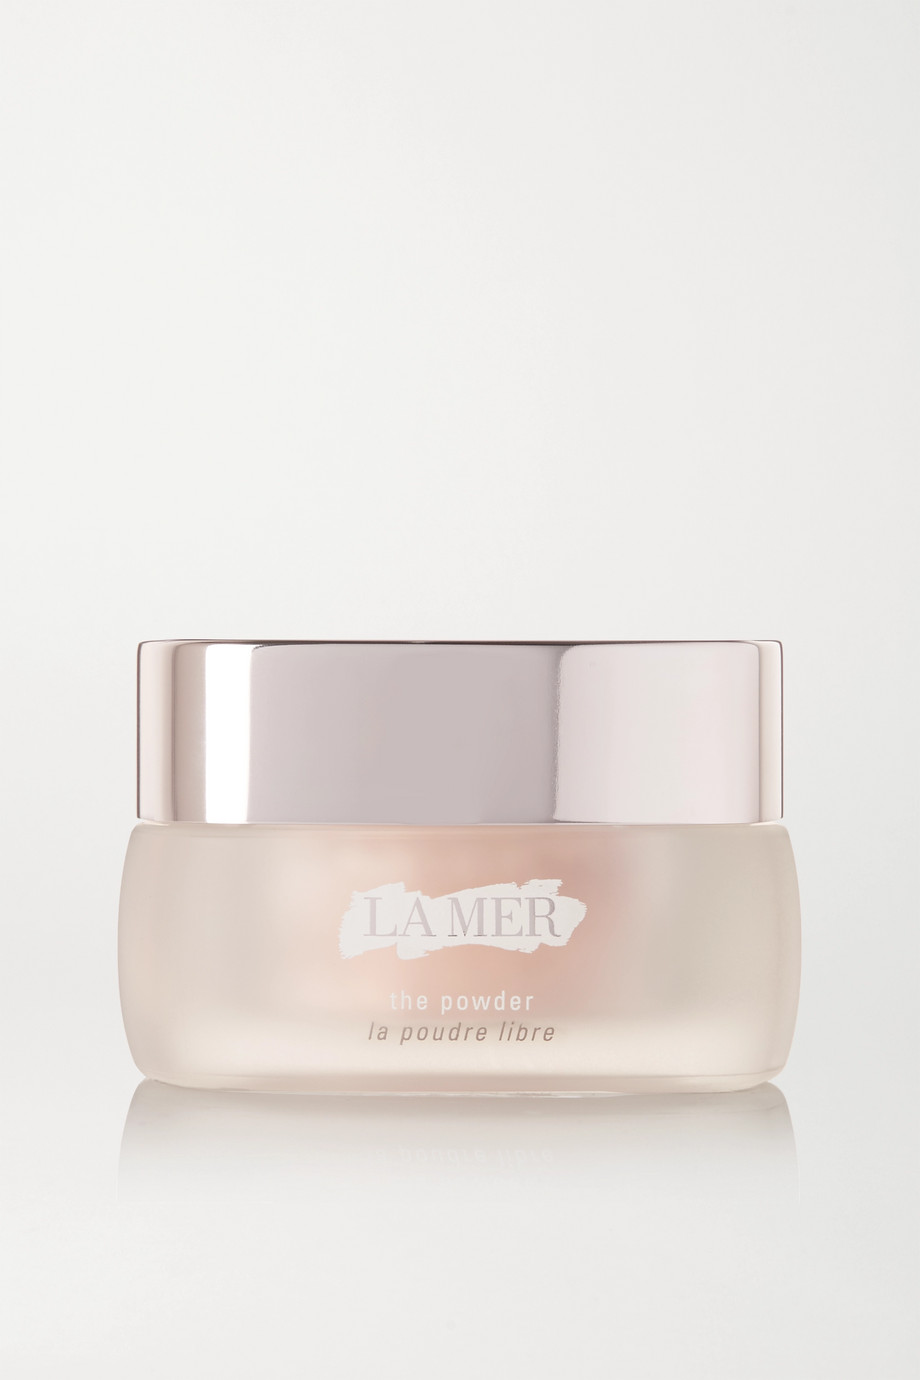 La Mer The Powder - Translucent